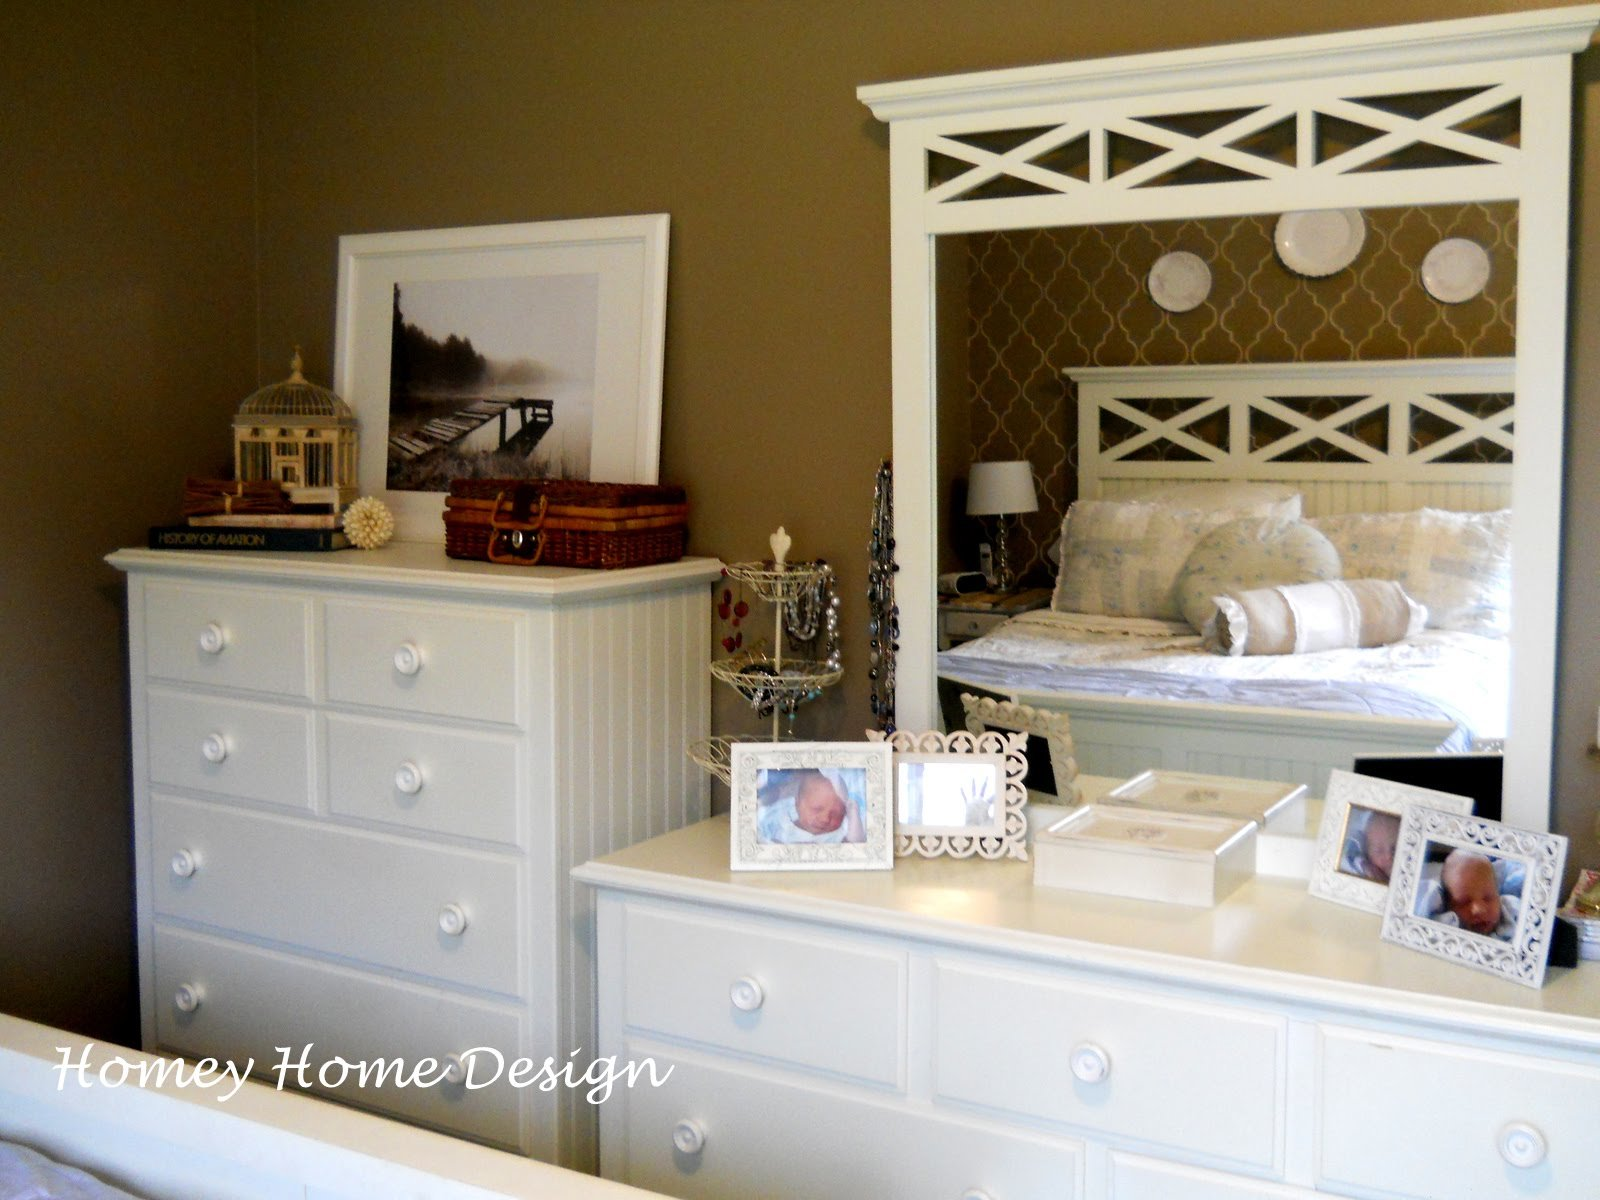 Best H*M*Y Home Design Dresser Decor With Pictures